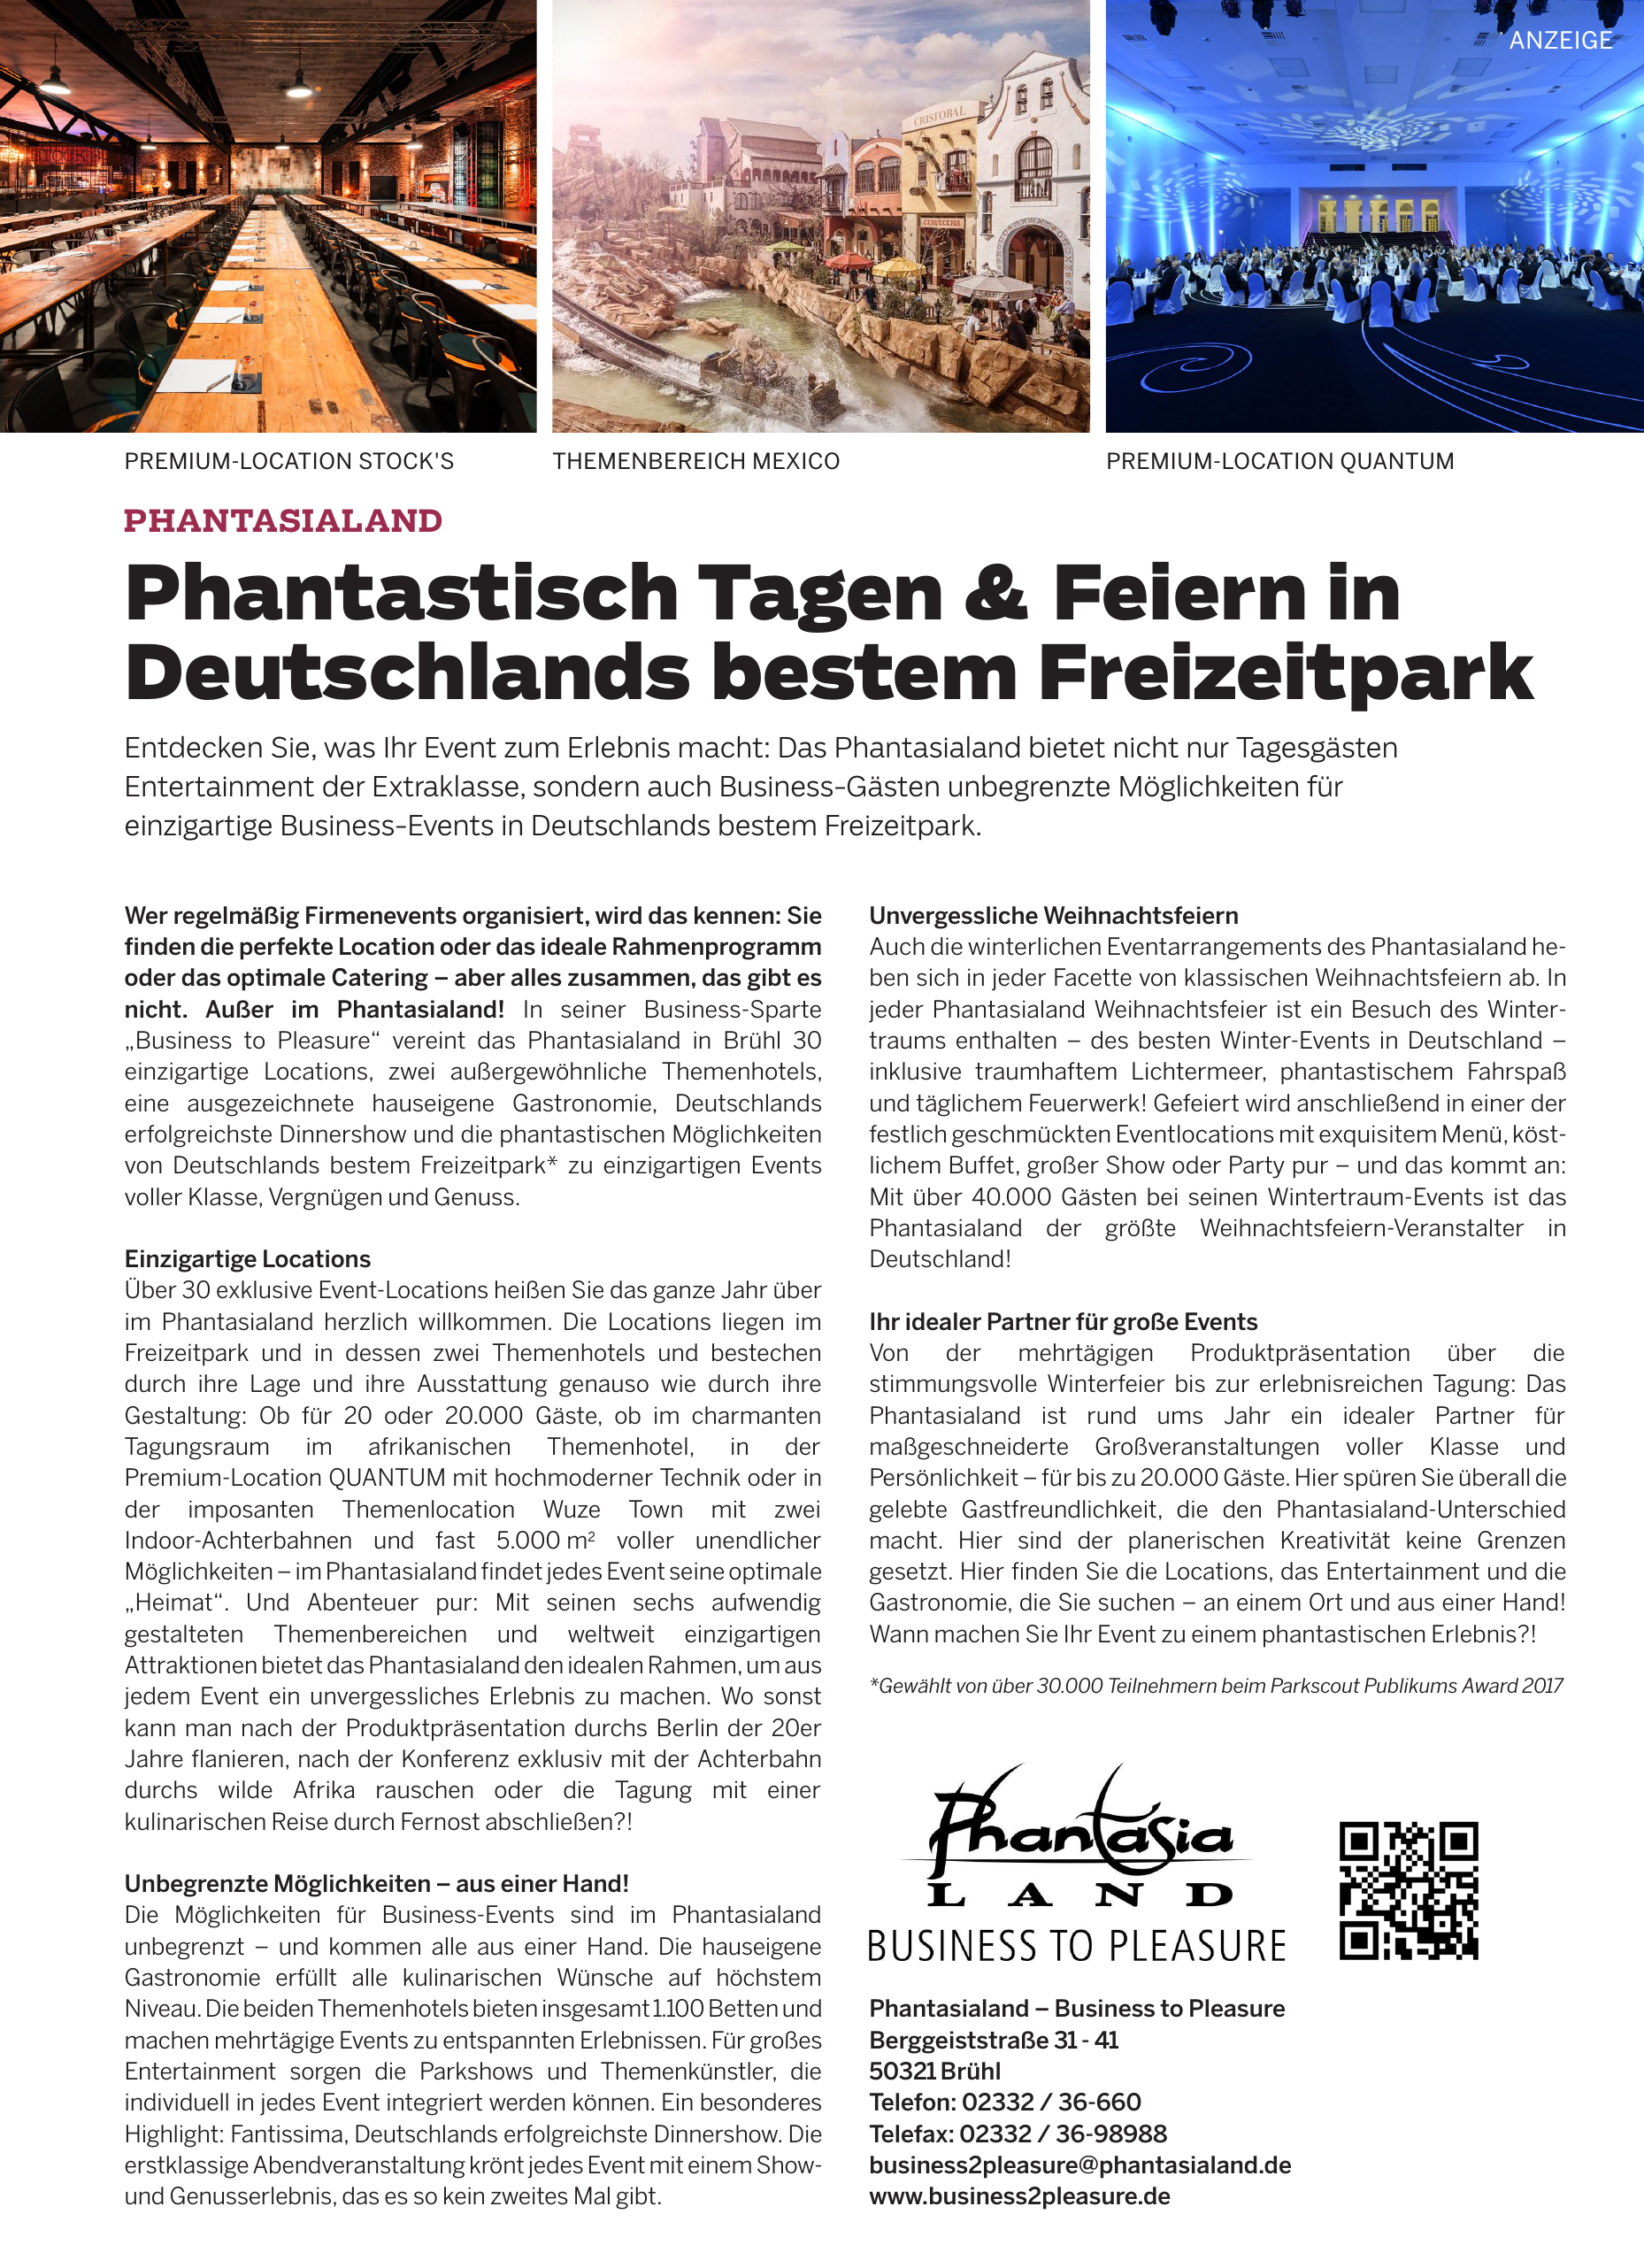 Phantasialand – Business to Pleasure